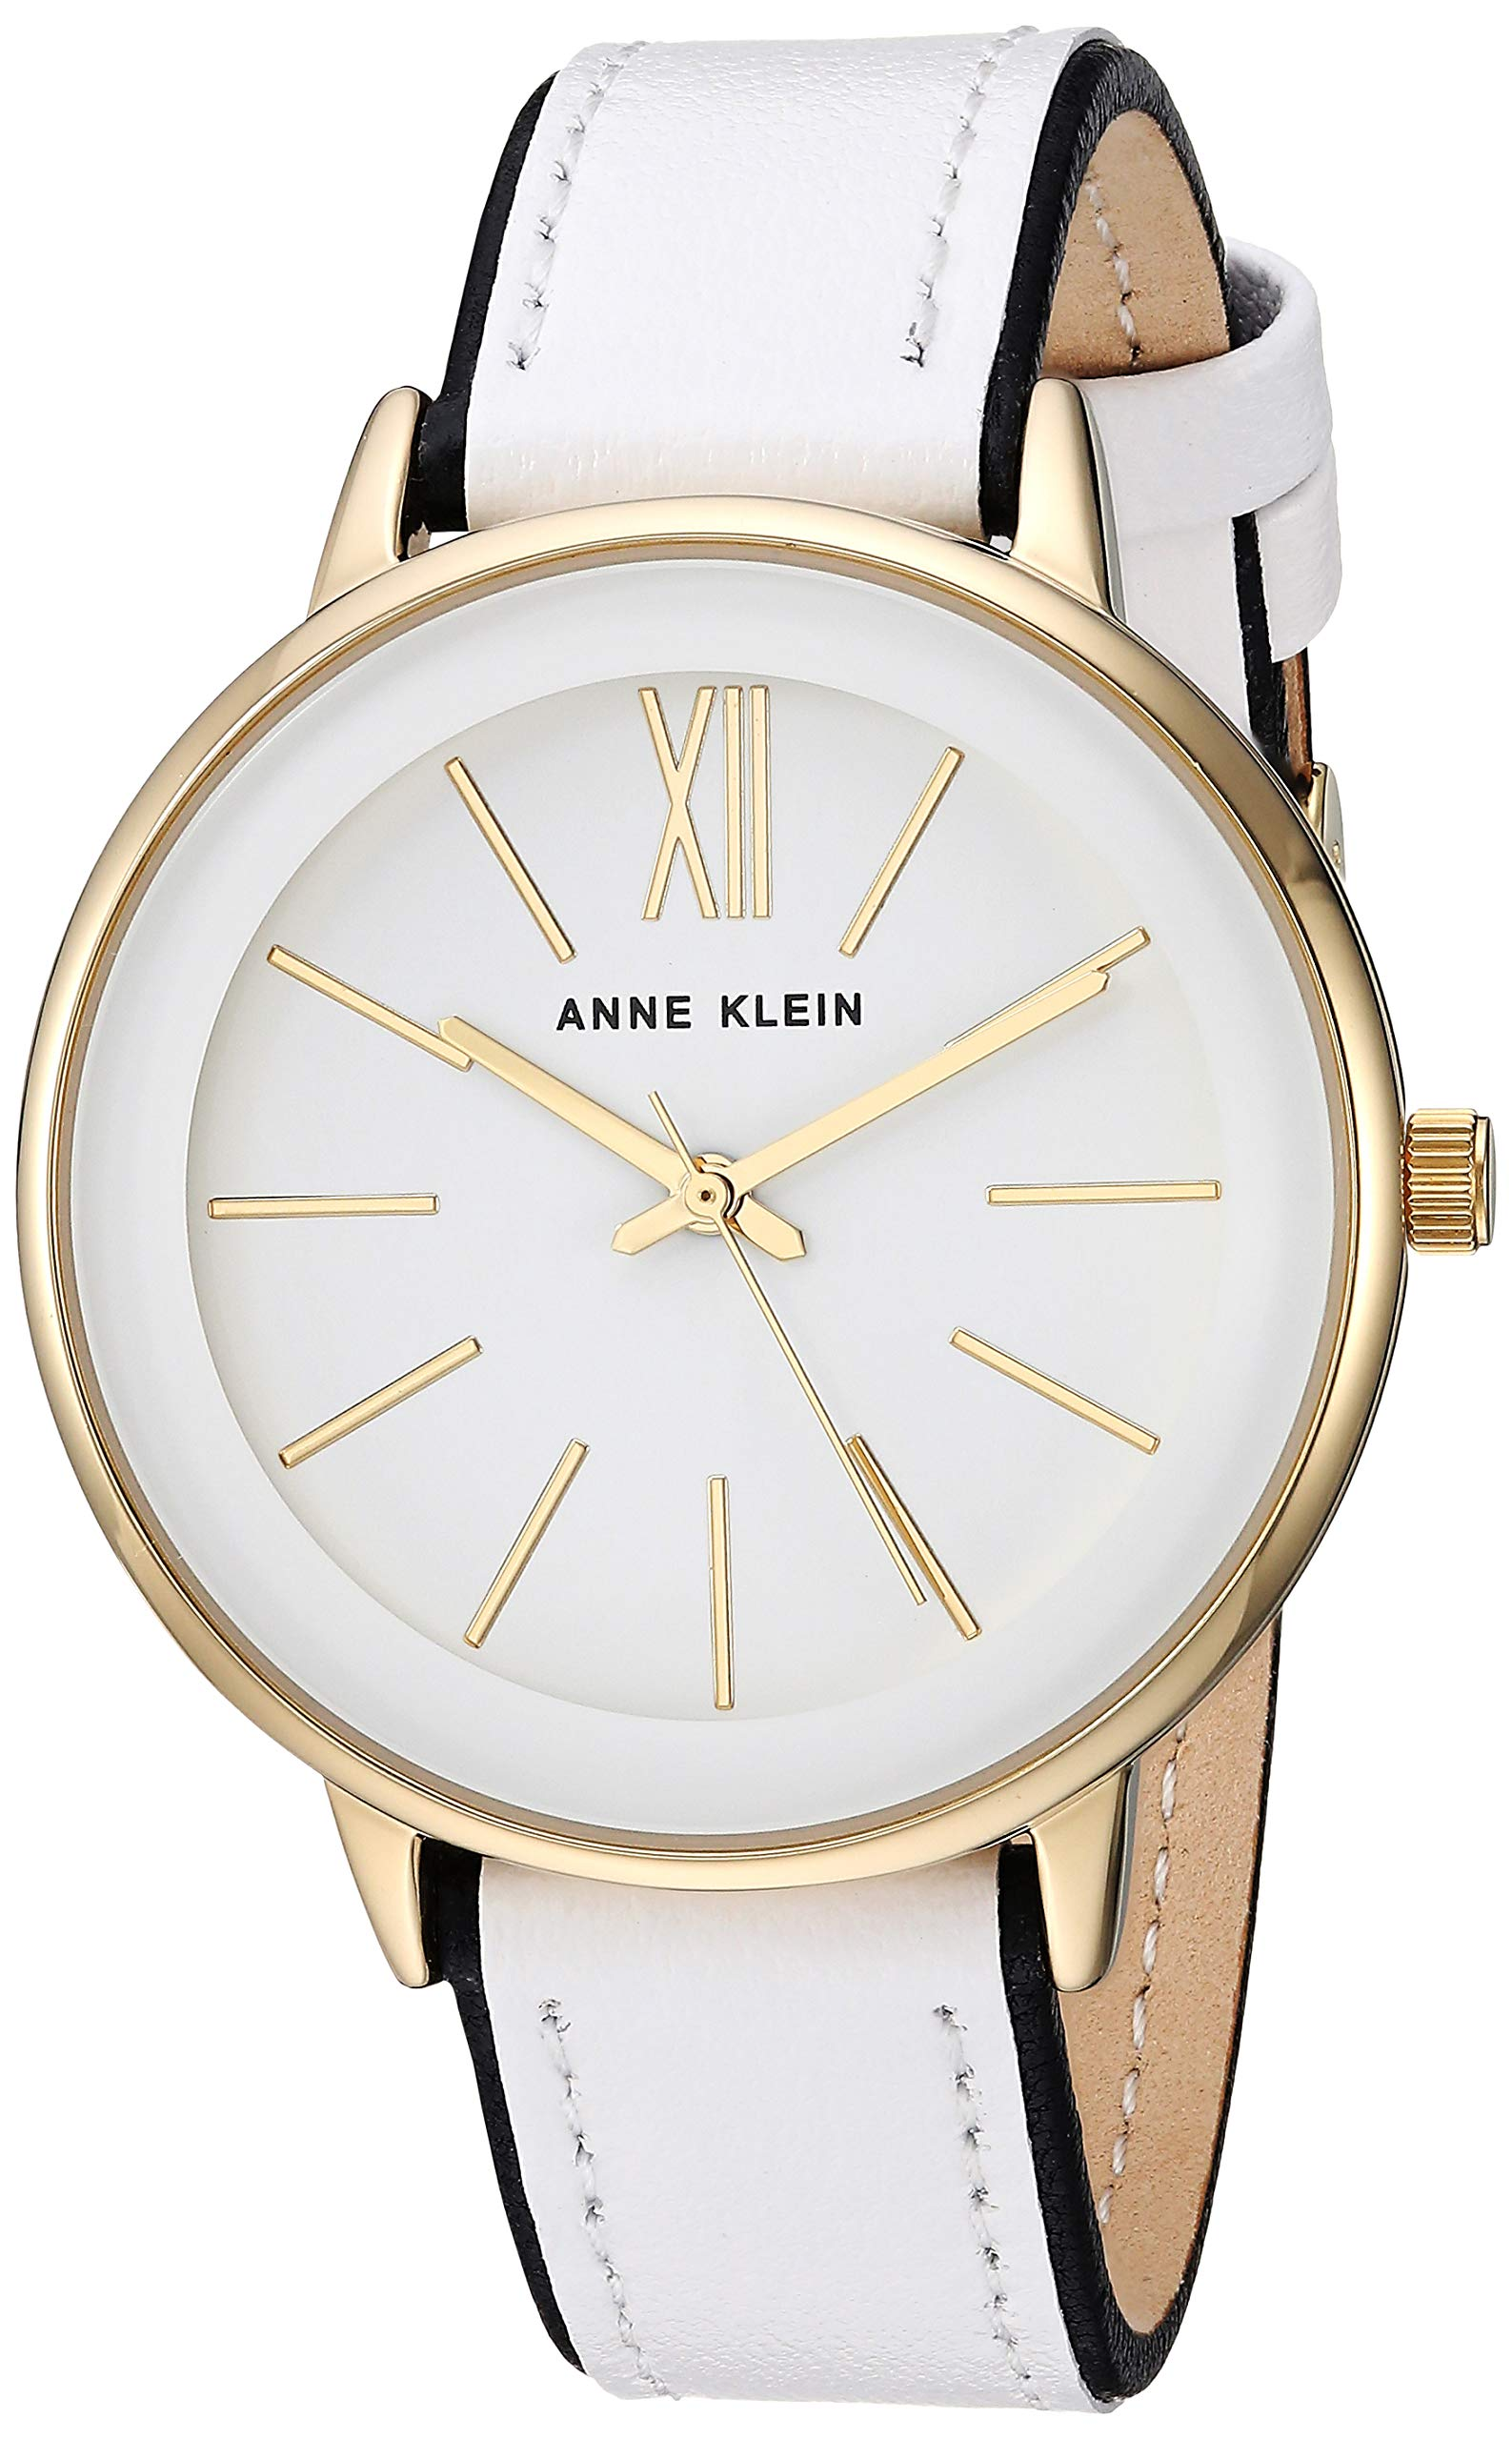 Anne Klein Women's AK/3252WTBK Gold-Tone Accented Black and White Leather Strap Watch by Anne Klein